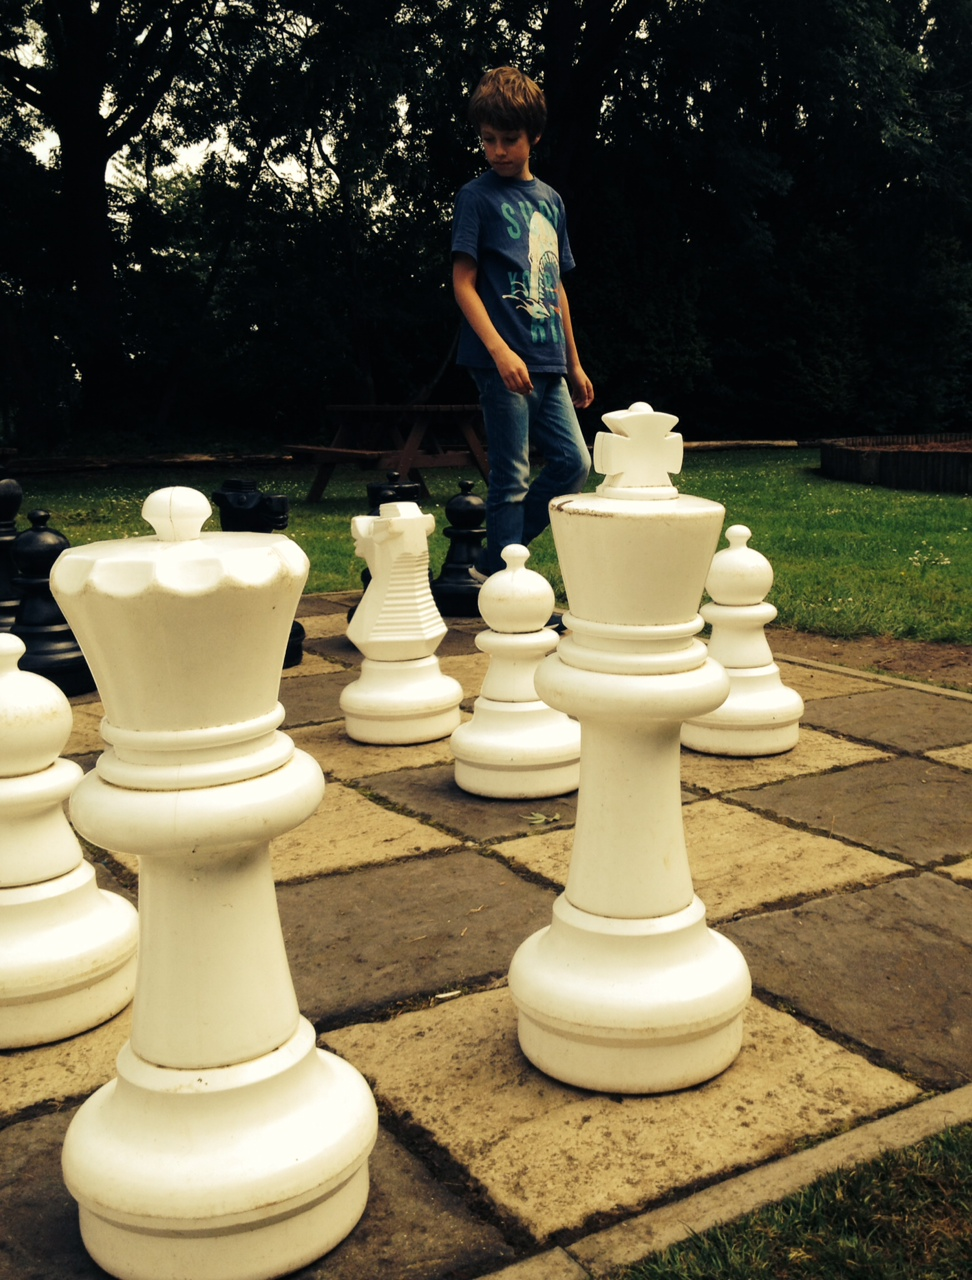 A chess challenge at Bletchley park